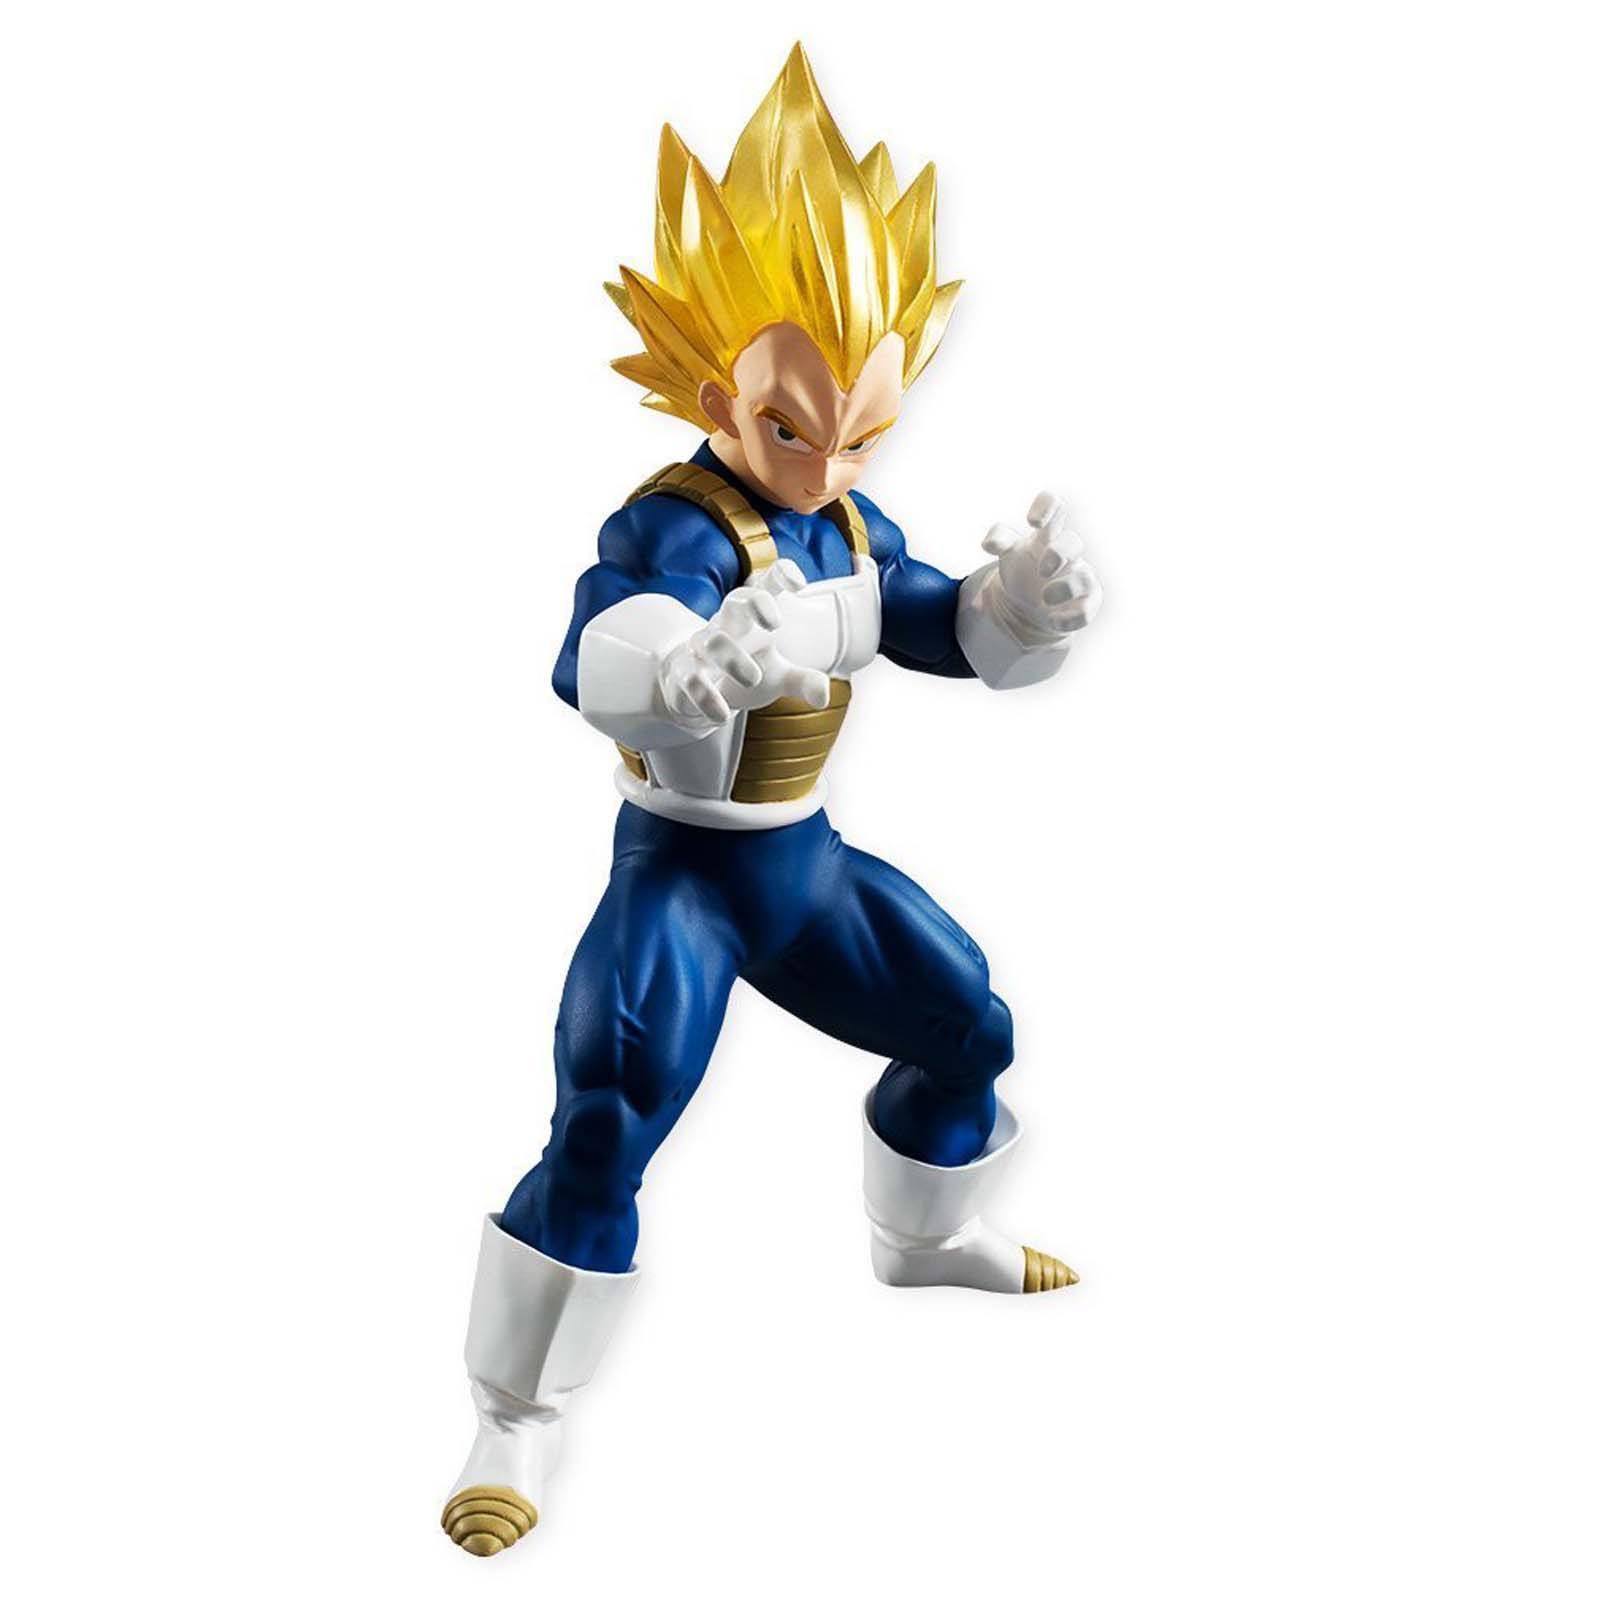 Bandai Dragon Ball Z Styling Vegeta Action Figure by Bandai